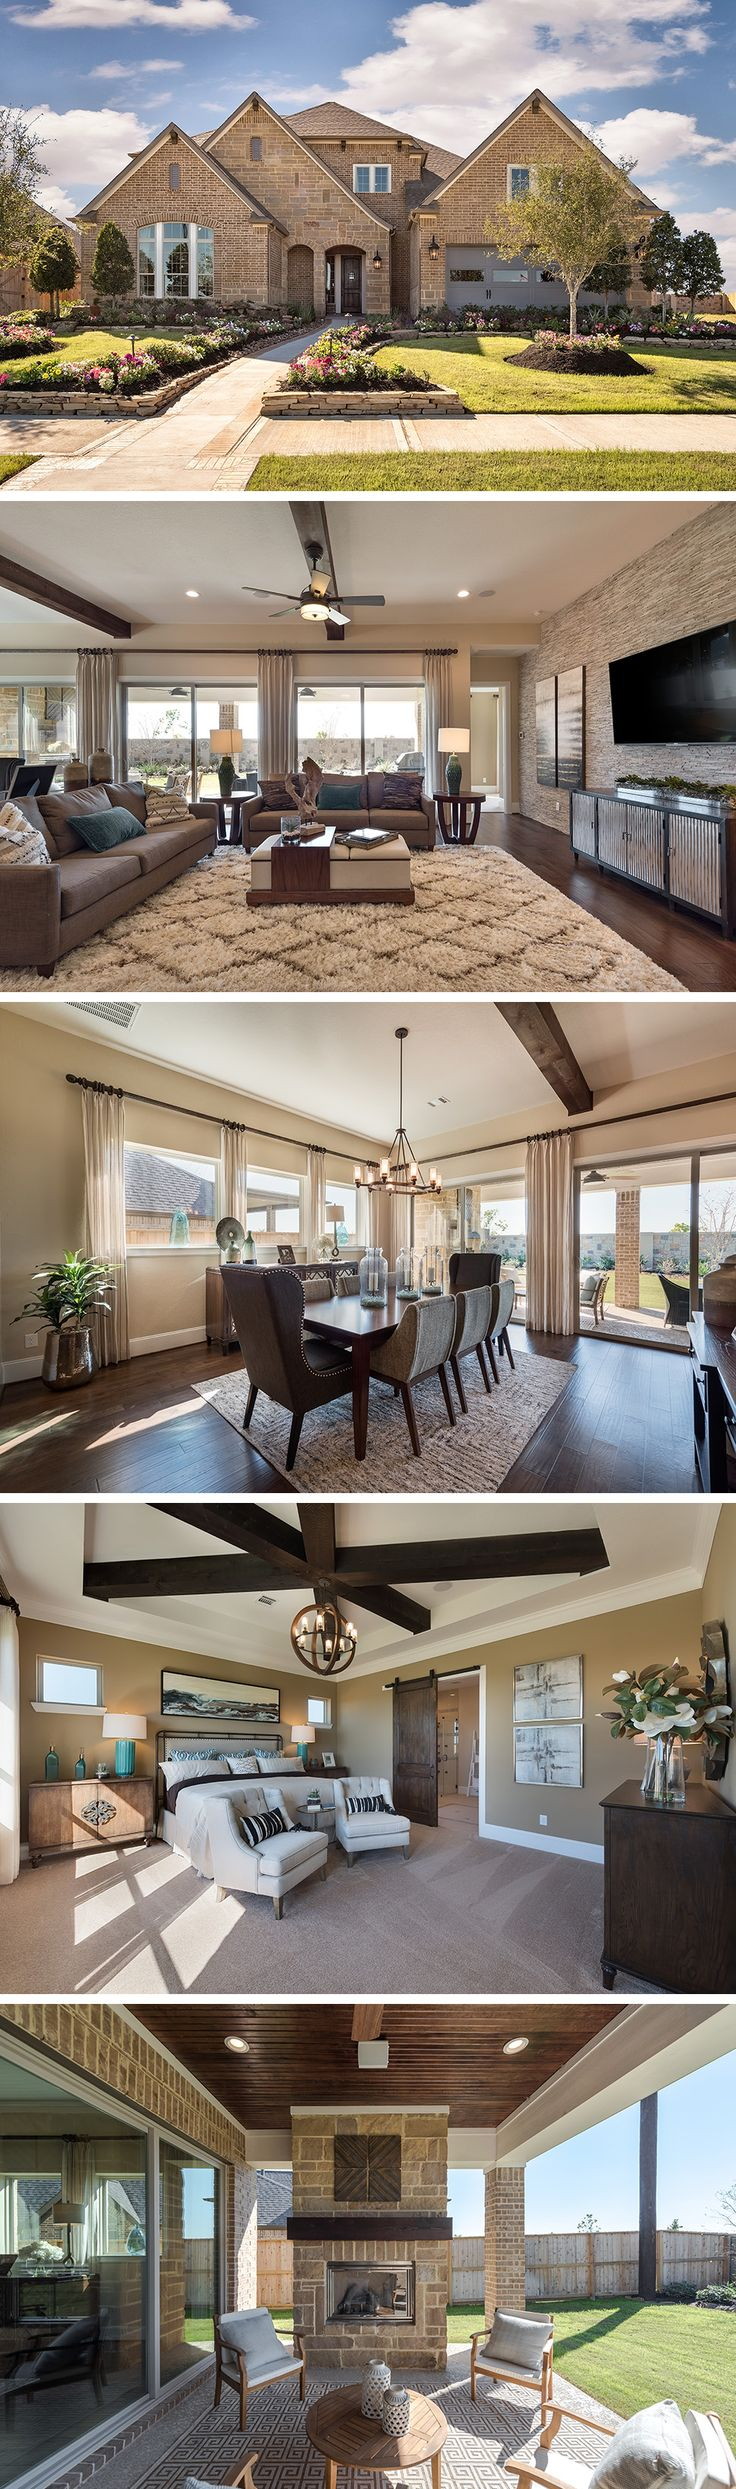 best 25 2 story homes ideas on pinterest two story homes big the master planned community of jordan ranch featuring over 1300 acres of stunning homes